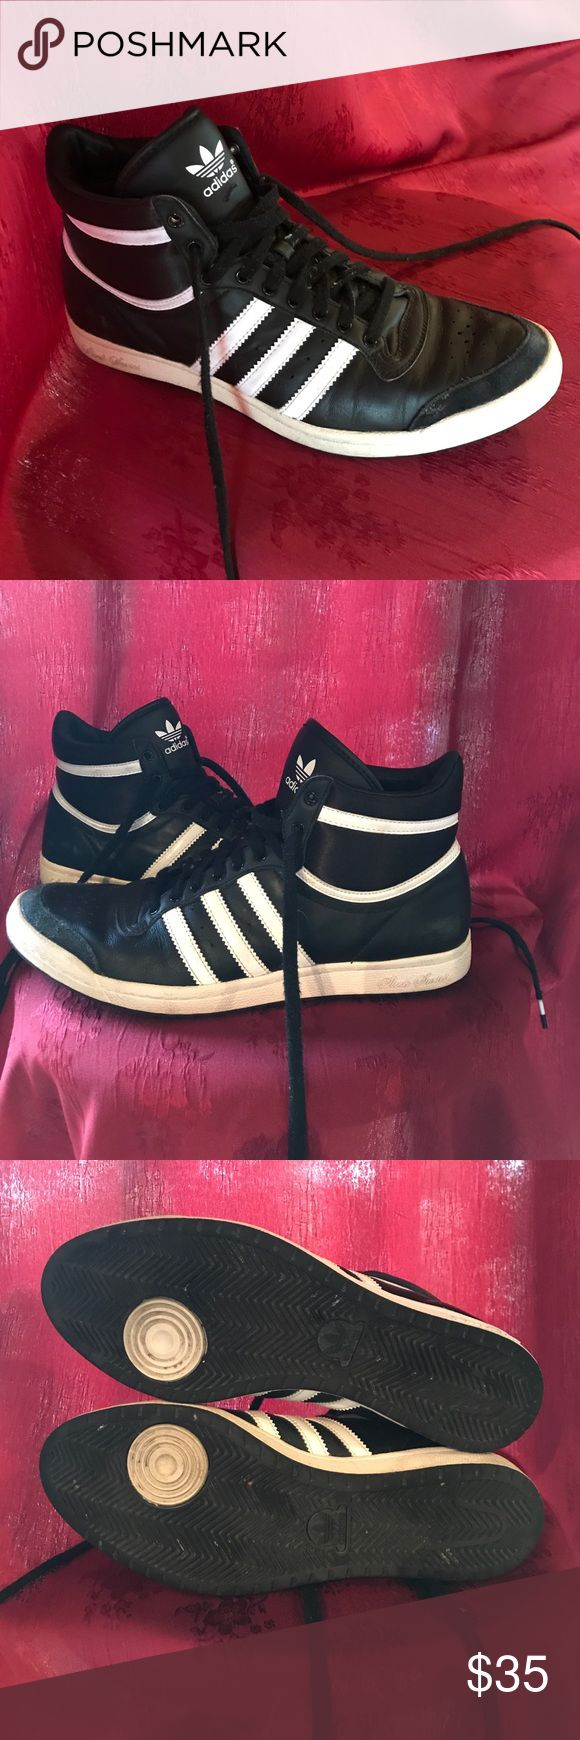 Adidas Sleek Series High Tops Adidas Sleek Series Hightops — Size 8 women's. Gently used, in lovely condition. I wear a 7.5 usually, & these fit me well, seeing as they are narrow. adidas Shoes Sneakers